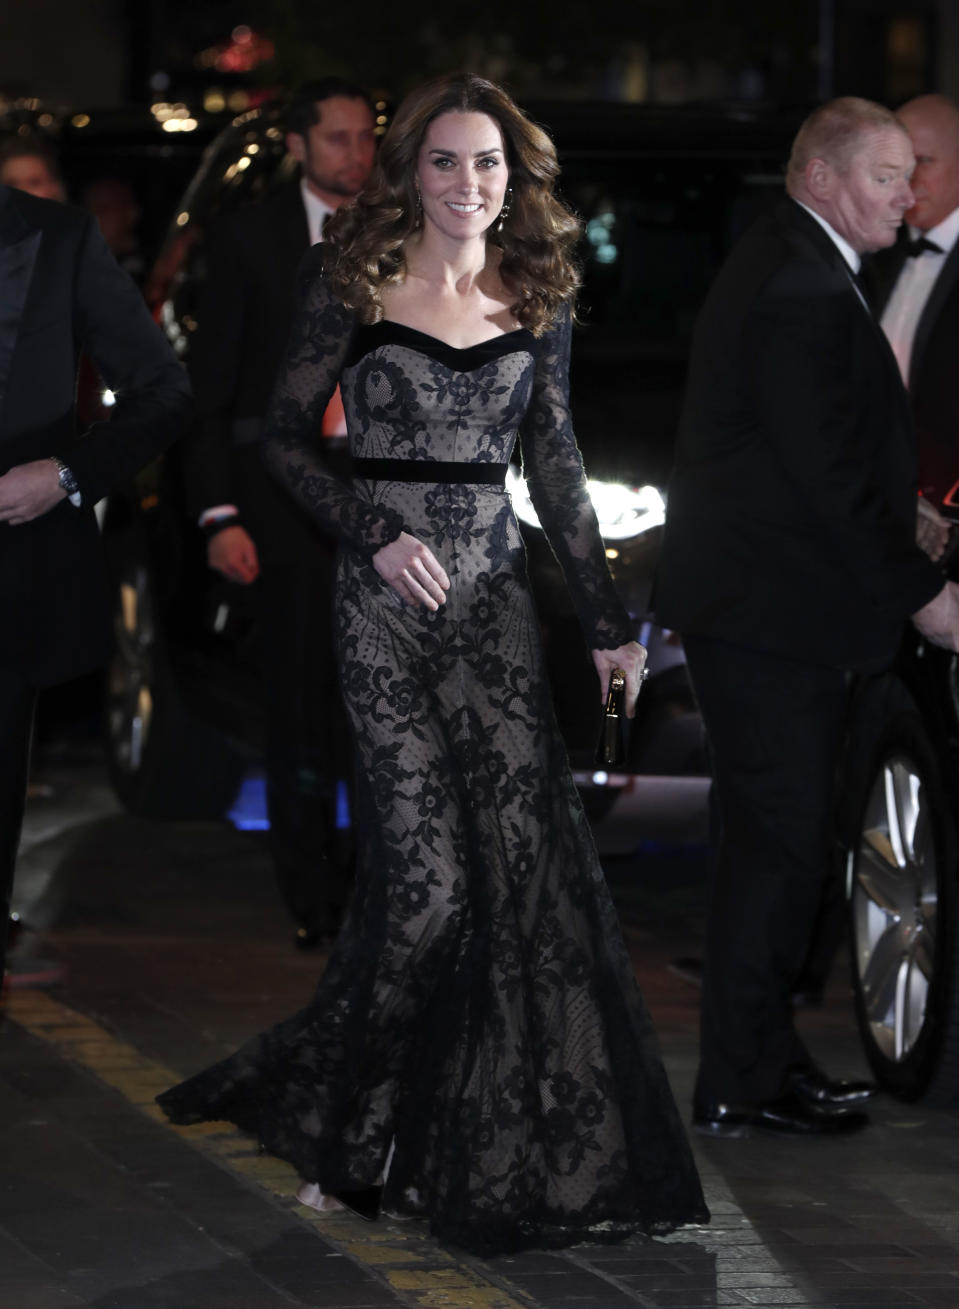 The Duchess of Cambridge stunned in a McQueen dress at the Royal Variety Performance. [Photo: Getty]